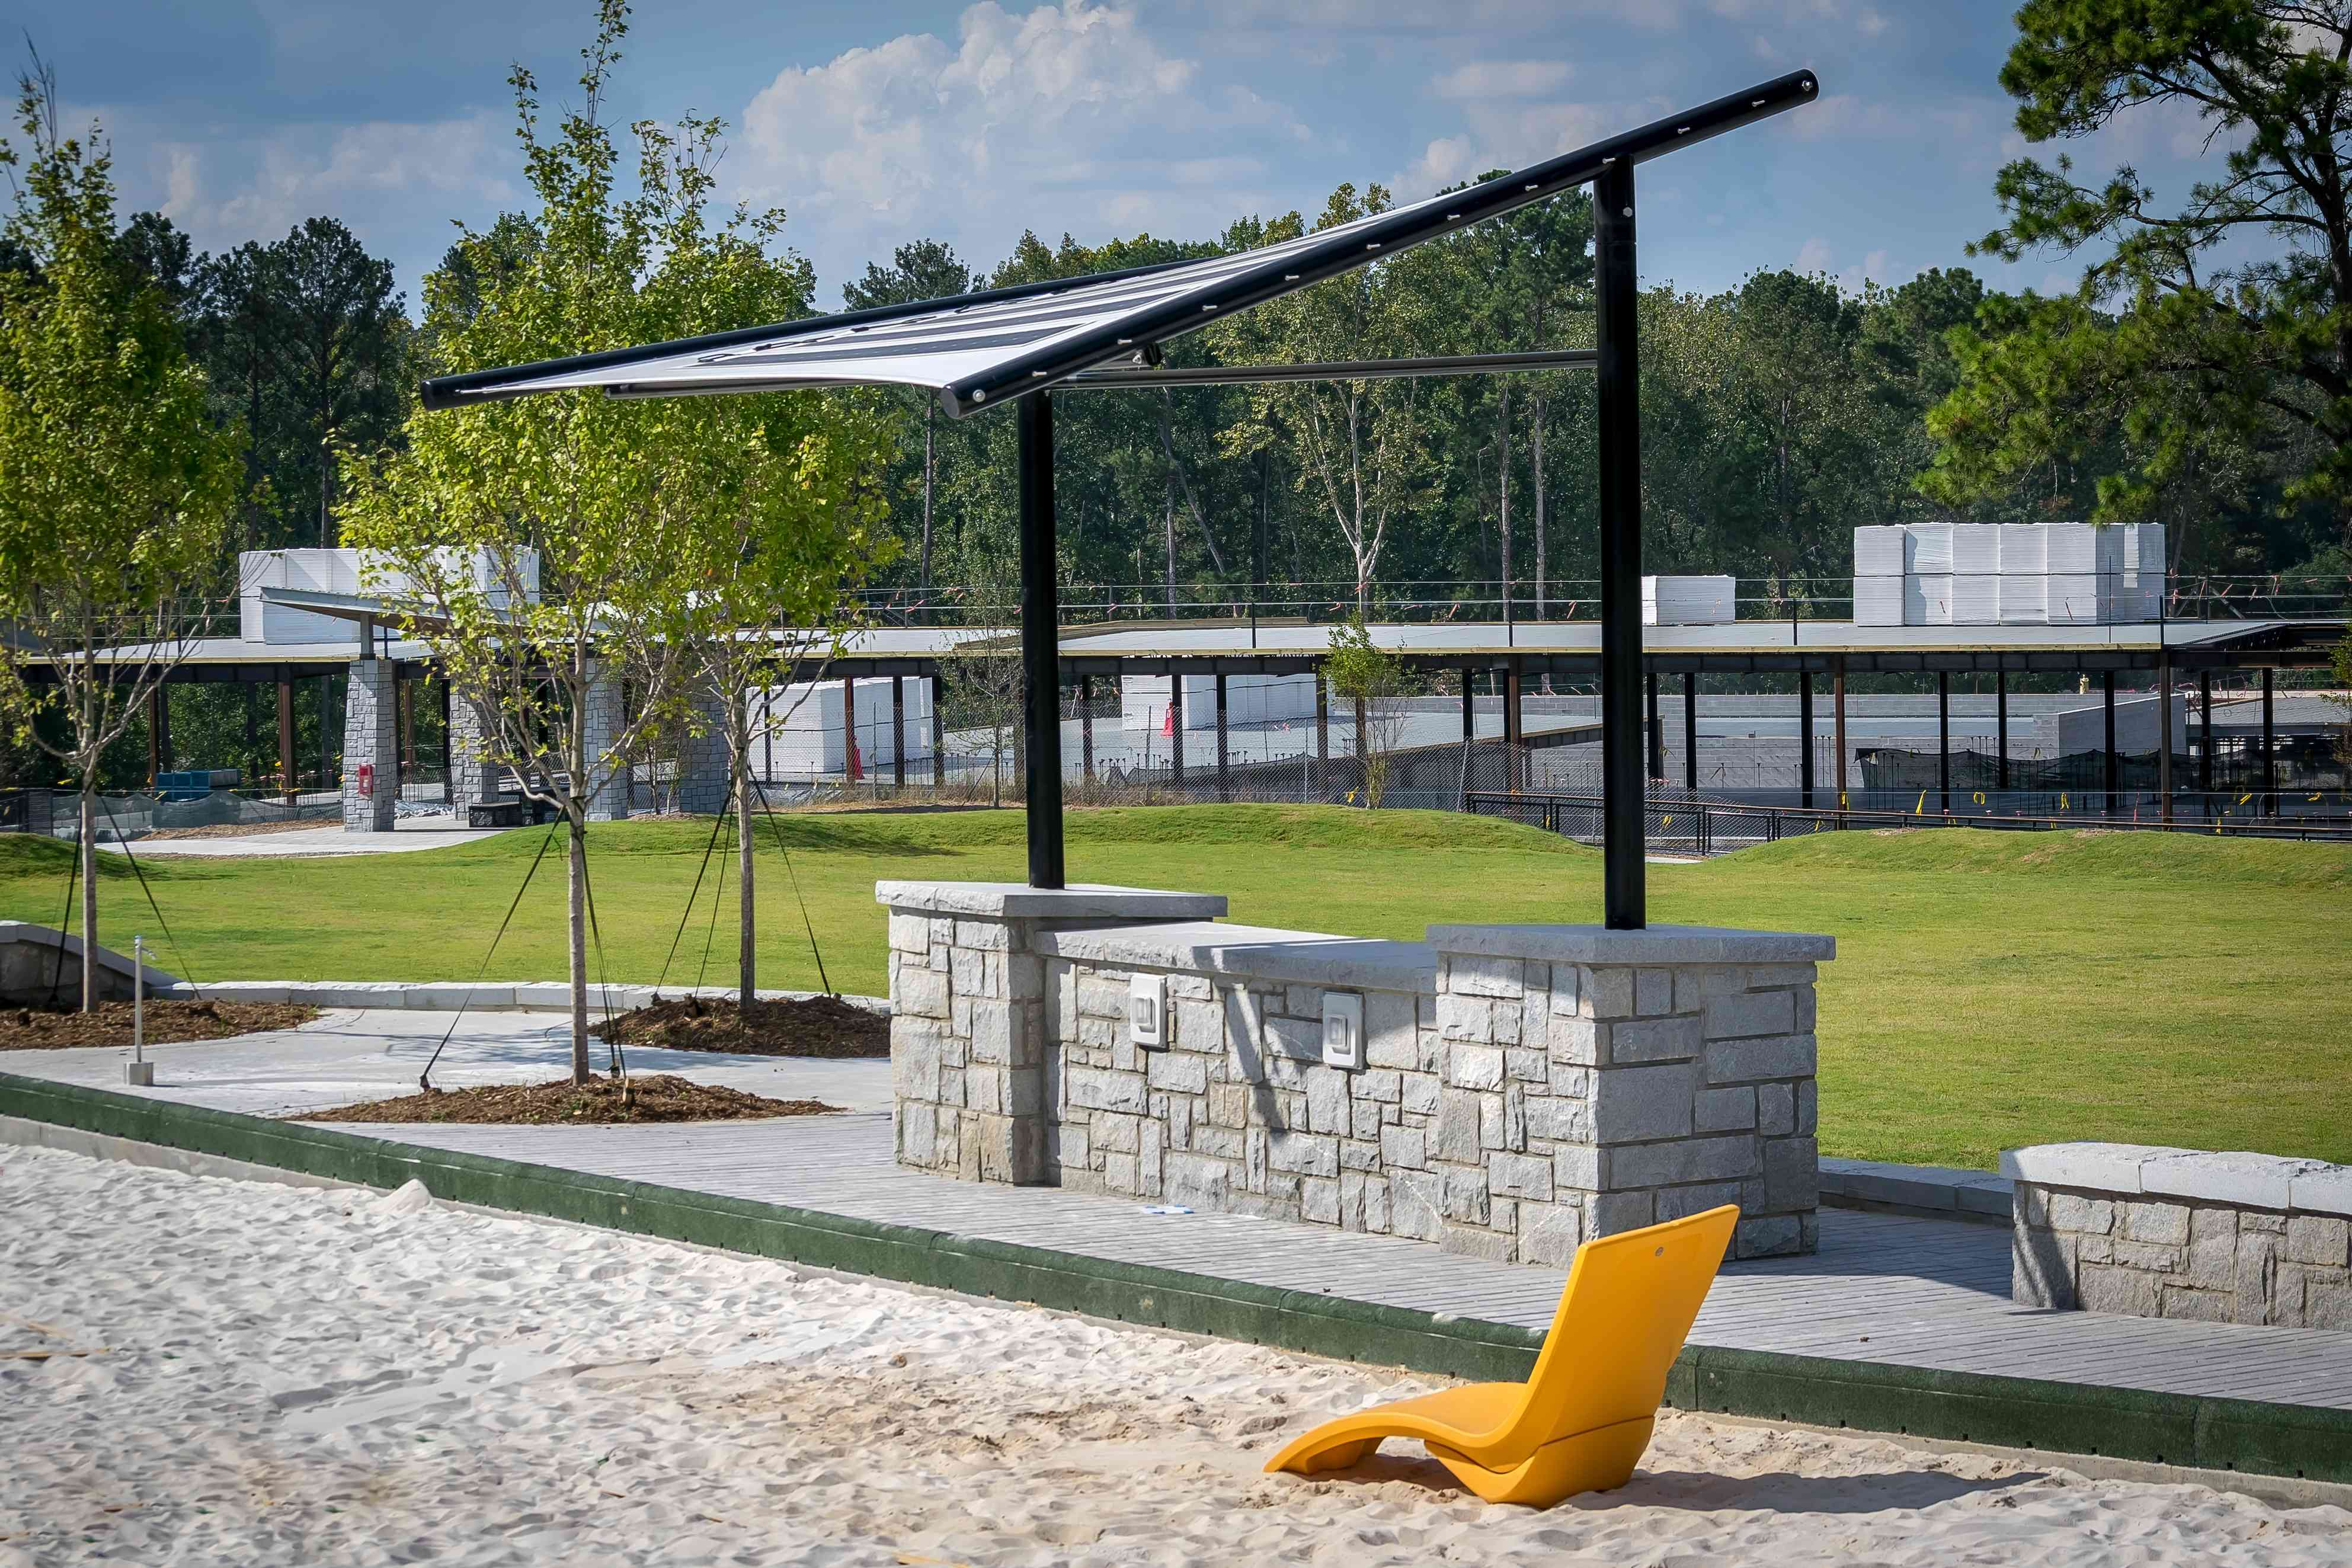 A solar panel in a park with a yellow lounge chair in the foreground.